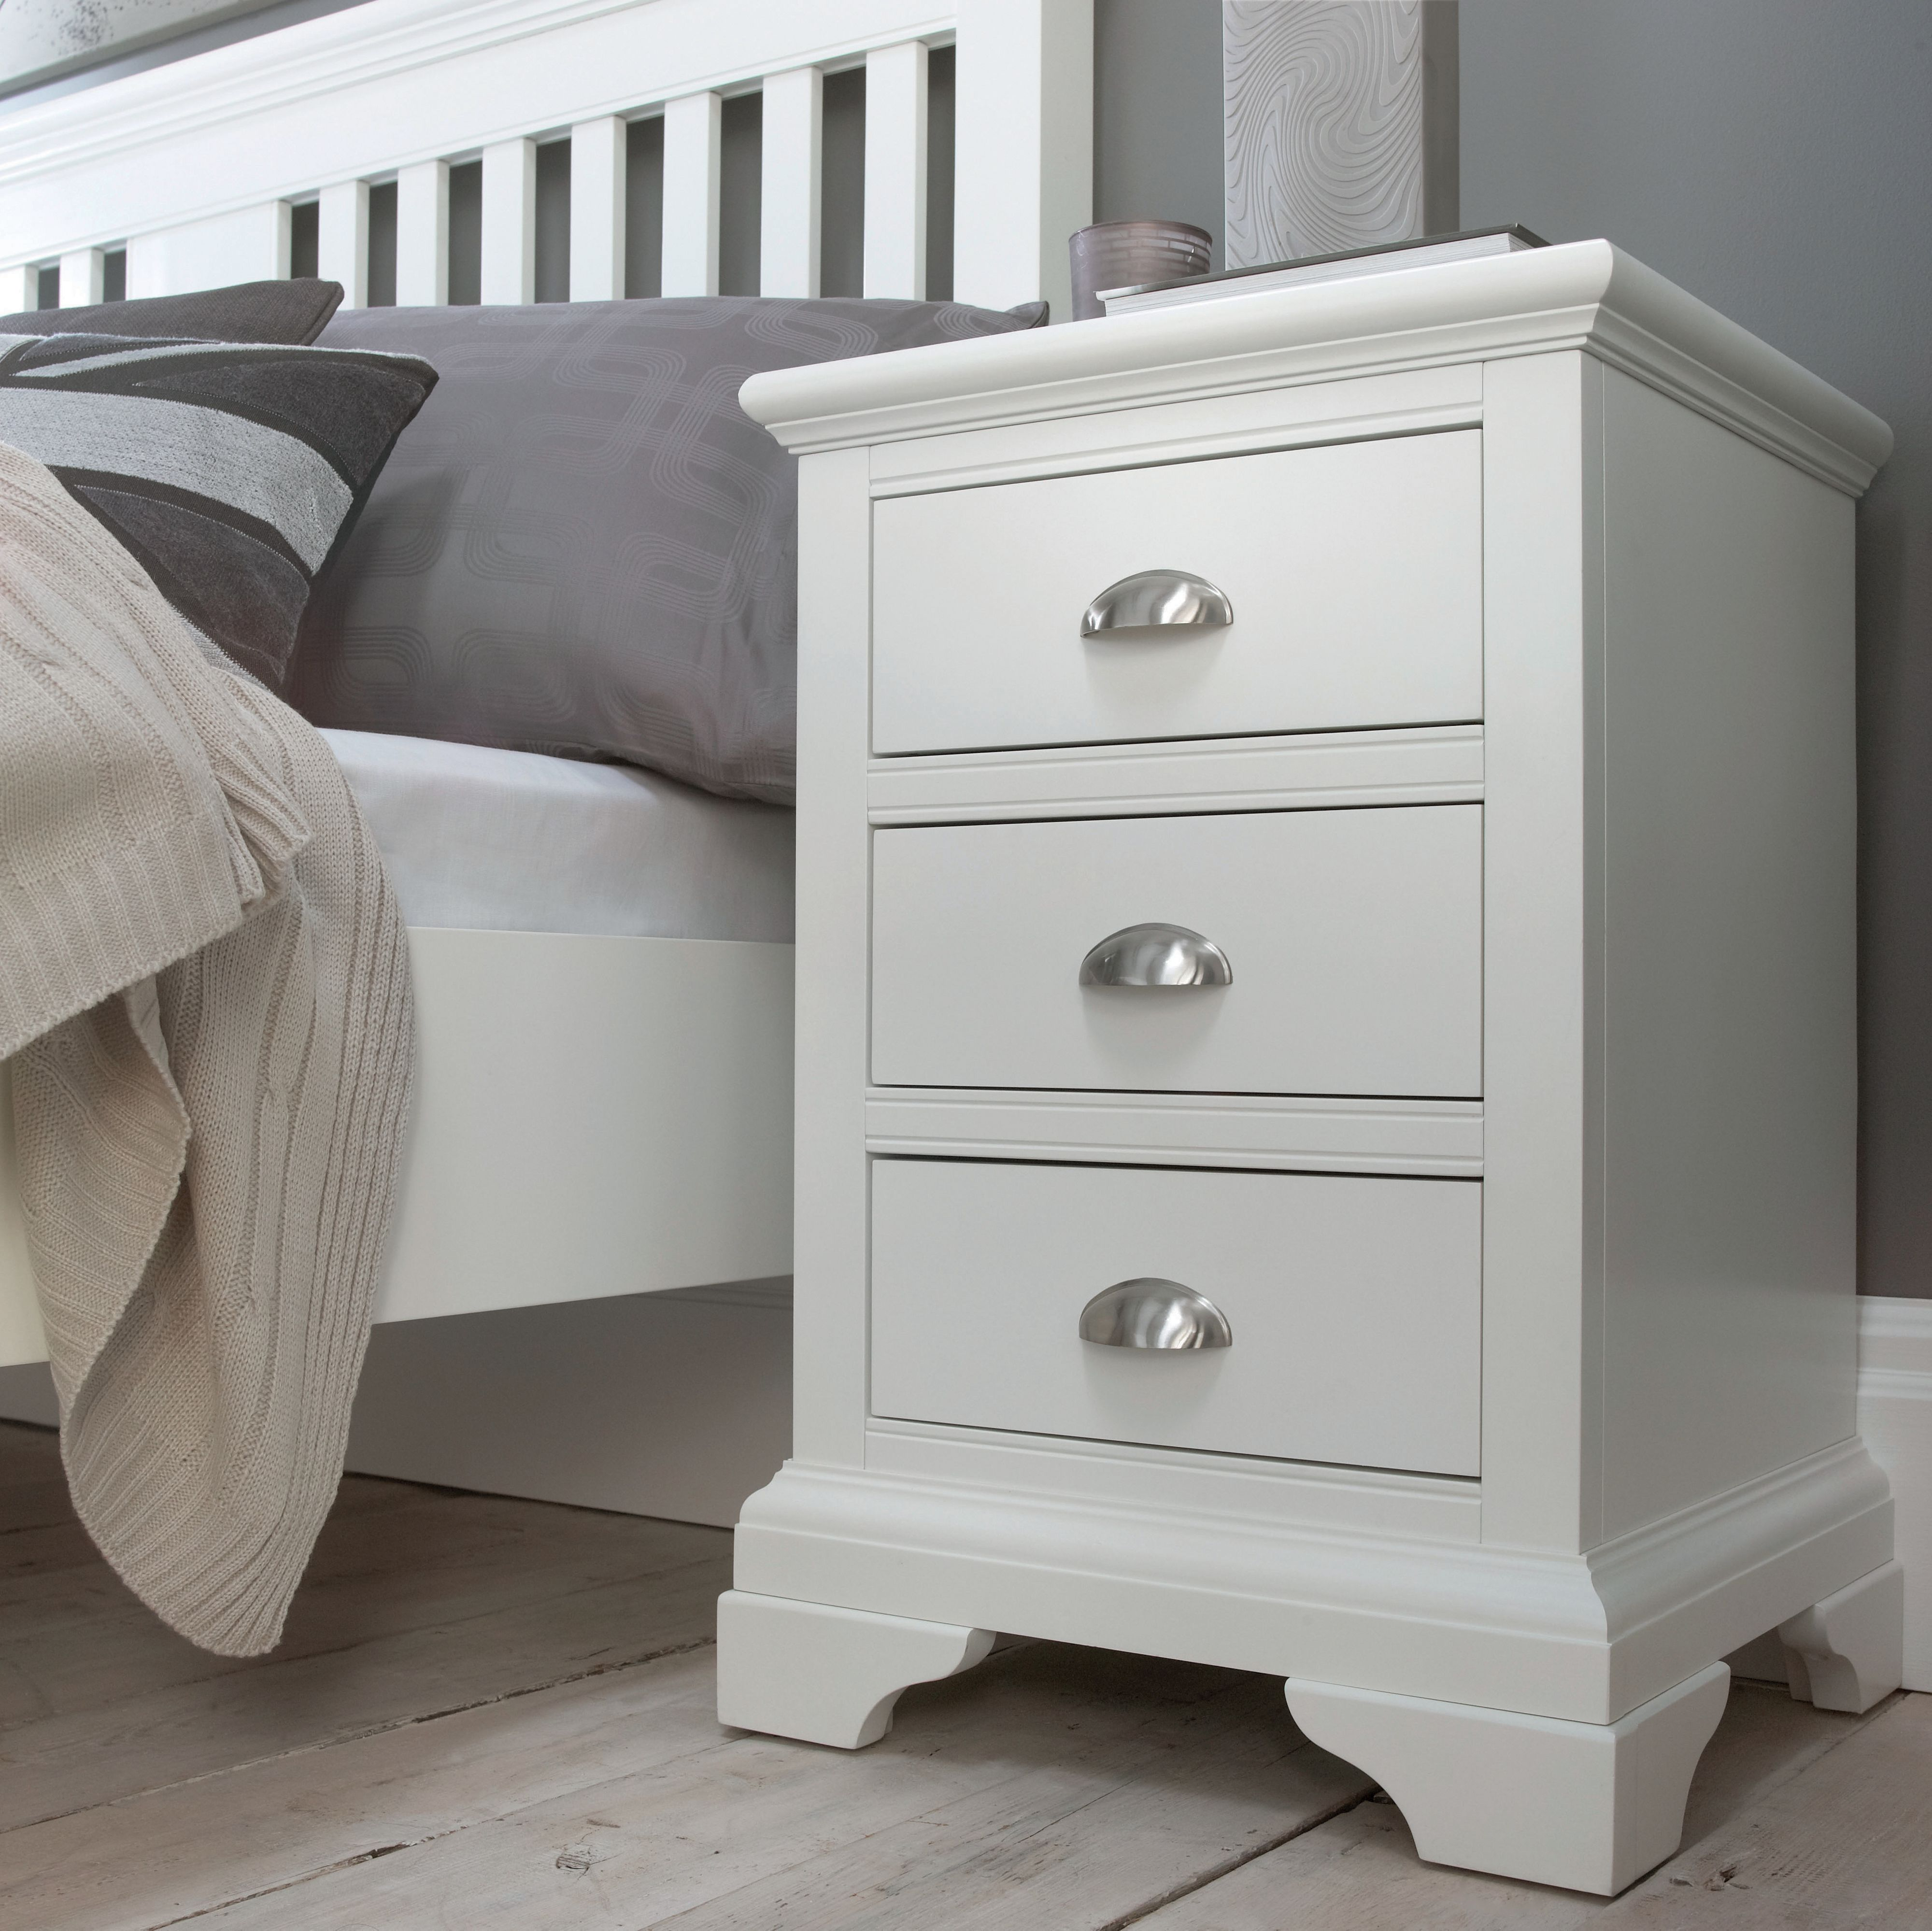 Etienne white 3 drawer bedside chest